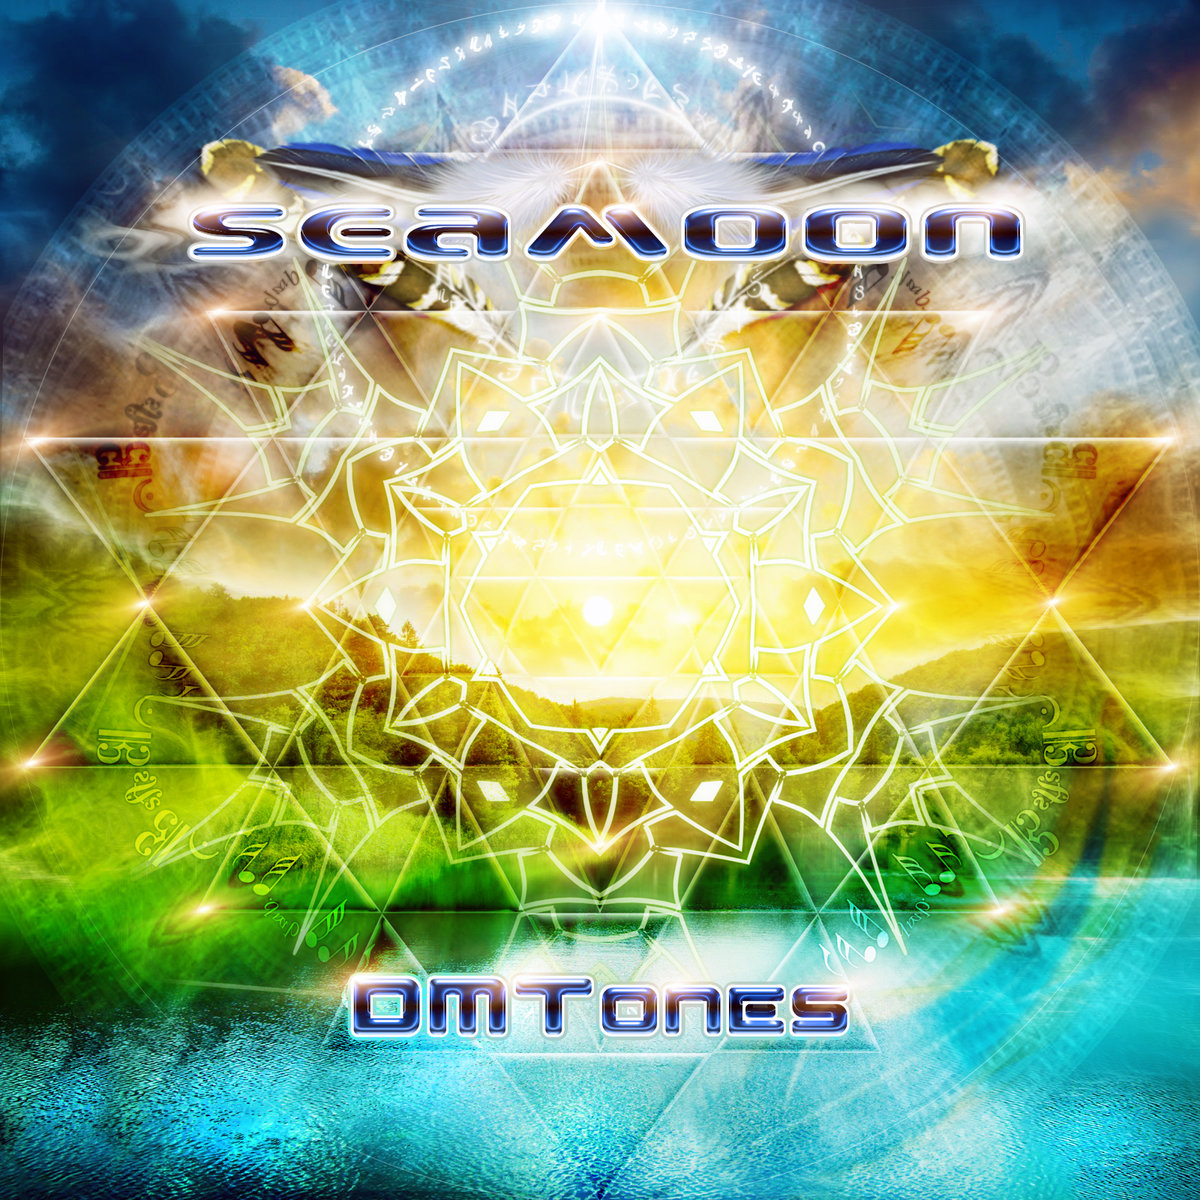 Seamoon - Beyond Physical Perceptions @ 'DMTones EP' album (amazon, dmt)